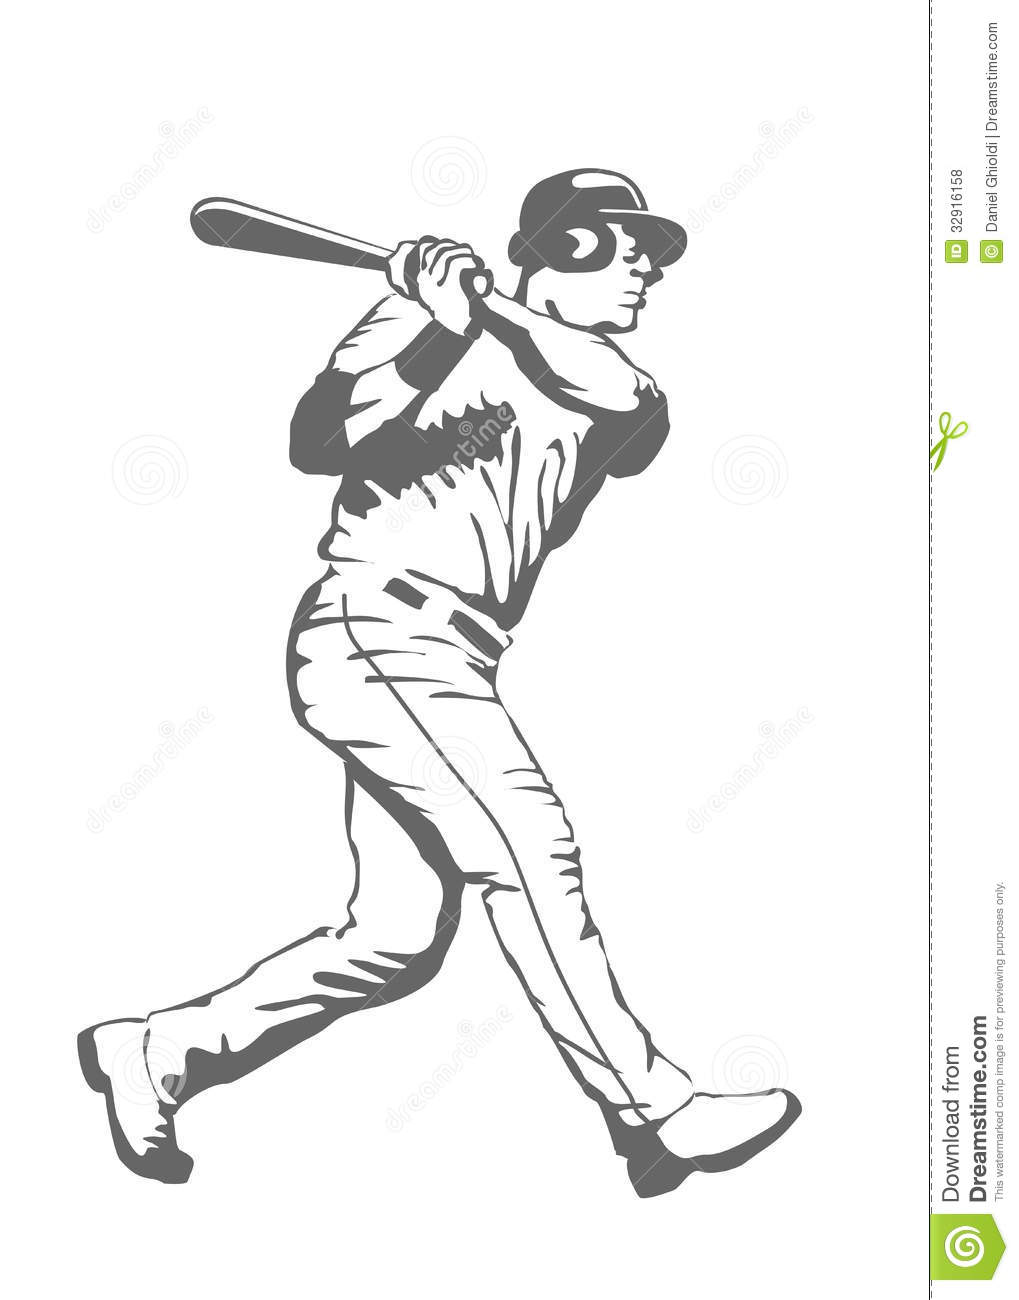 how to draw a baseball player hitting the ball clipart of baseball boy batting k20969711 search clip baseball ball hitting player to draw how a the